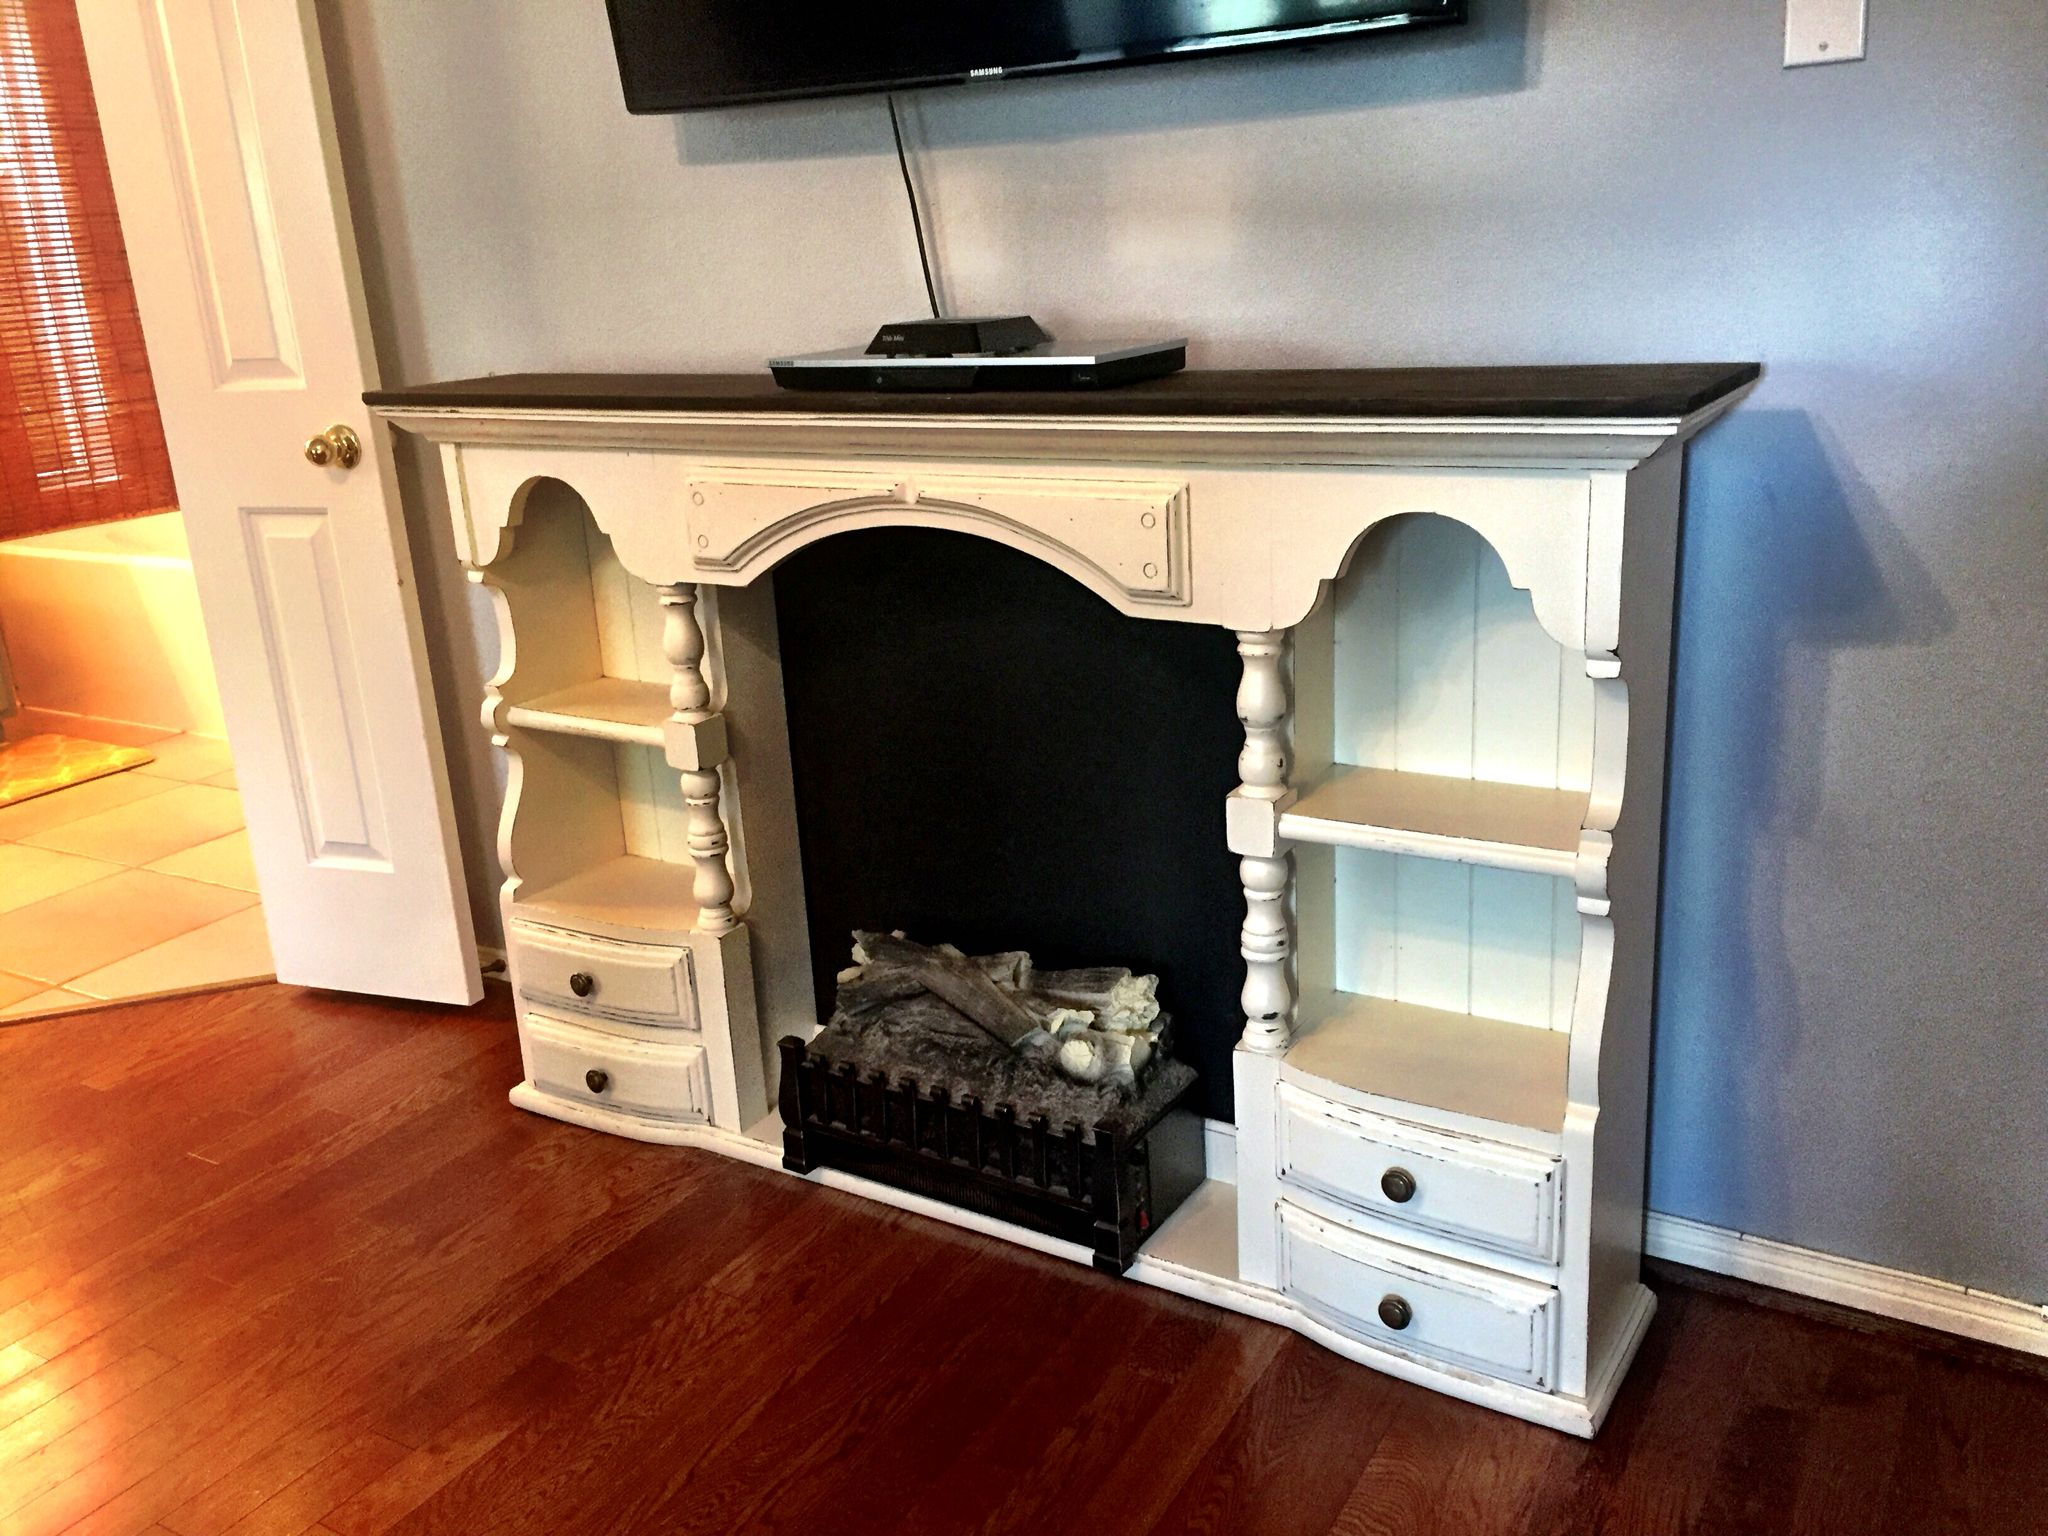 Cute repurposed 80's style dresser or buffet top... Makes a sweet country faux fireplace for a bedroom. Think maybe for guest rooms. Cozy.